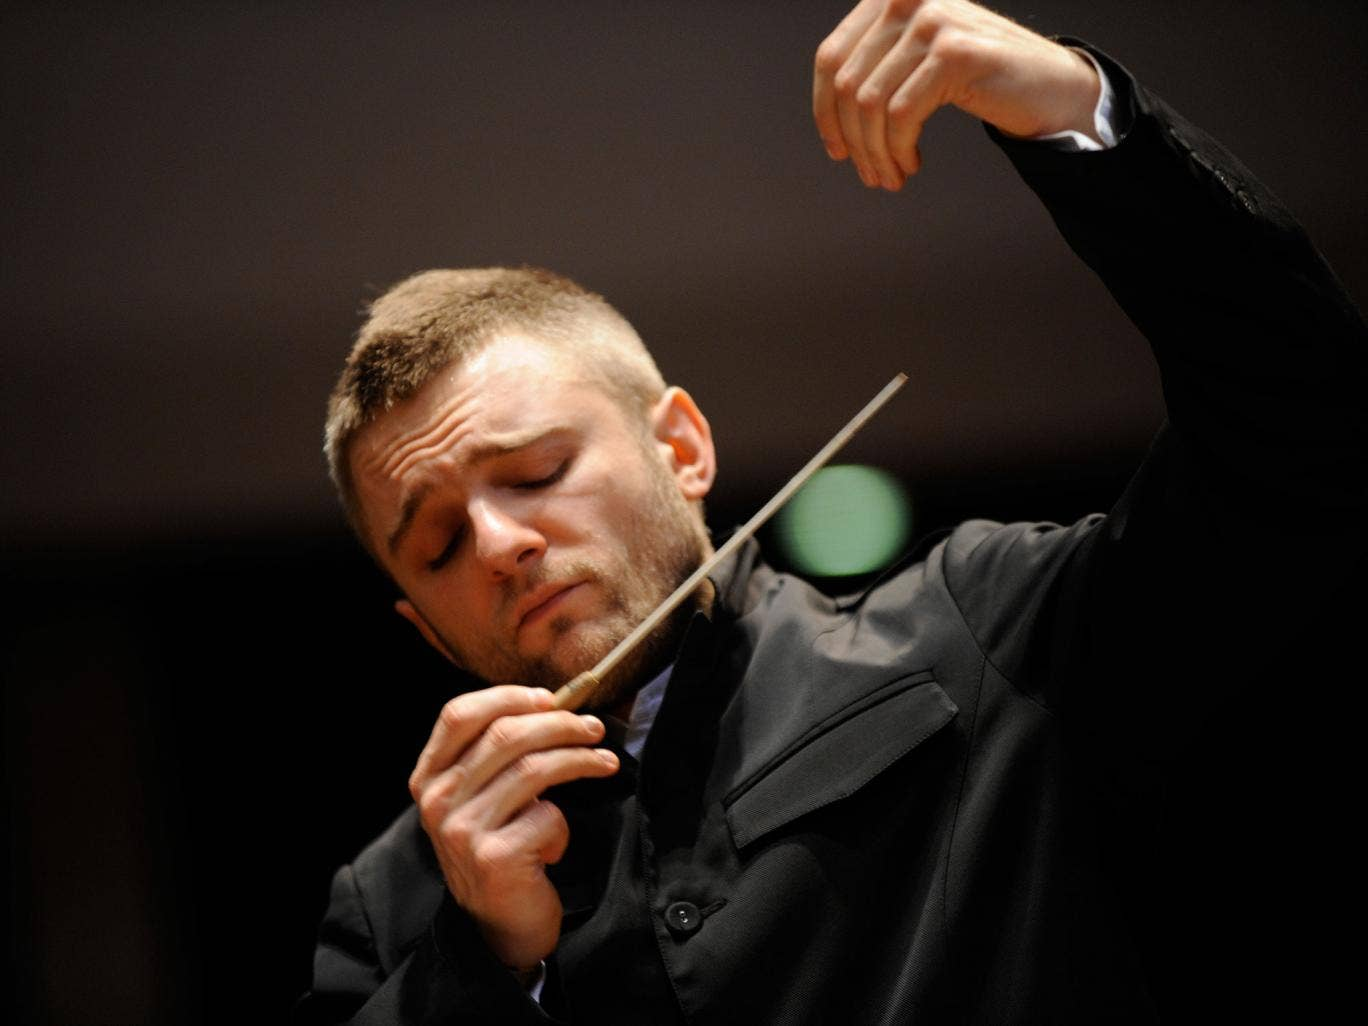 Kirill Karabits, a 37-year-old Ukrainian, is to conduct the I, Culture Orchestra, made up of young musicians from the former Soviet and Eastern Bloc states